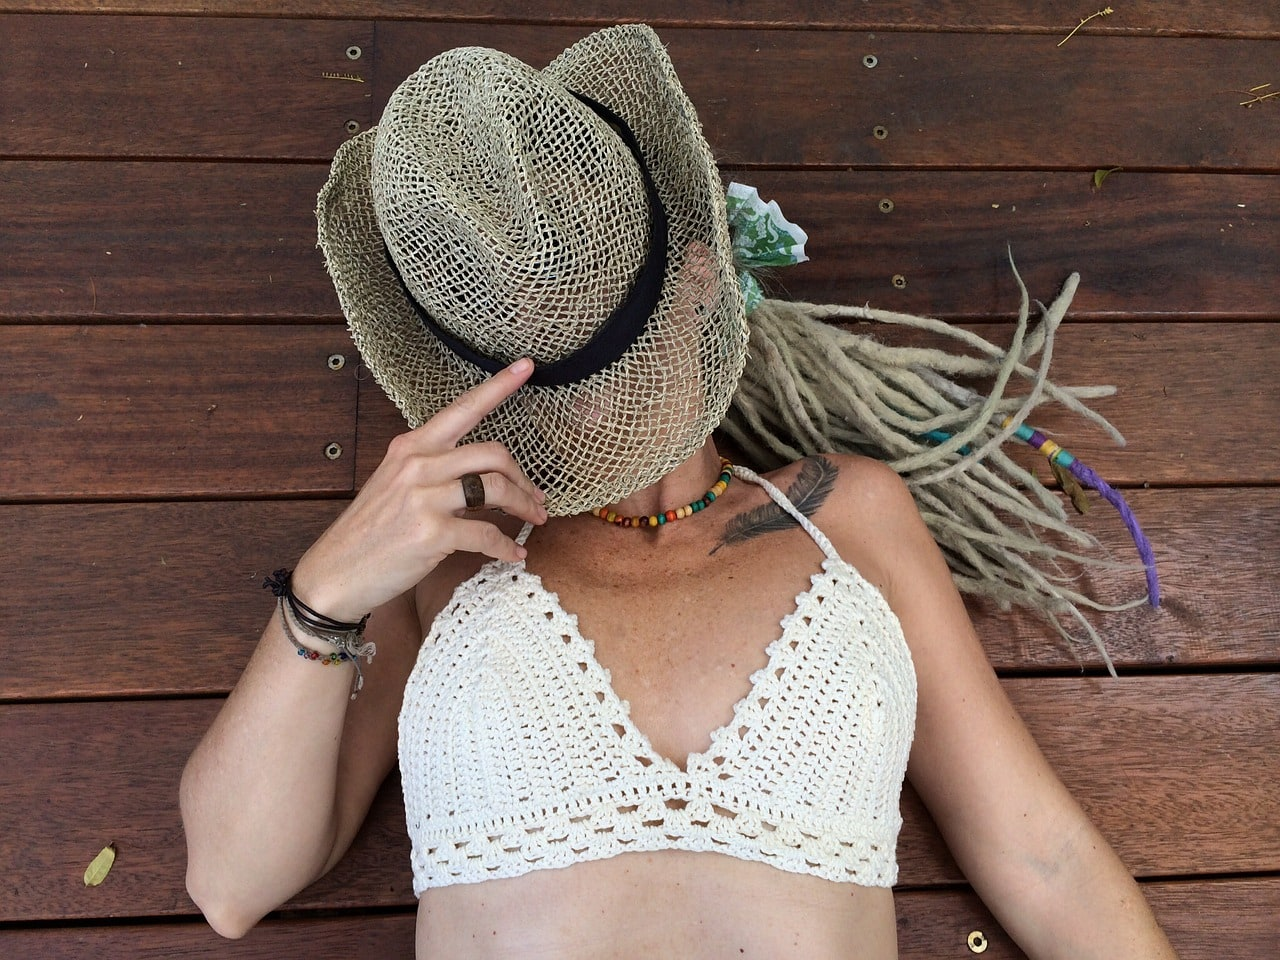 Can You Swim In Crochet Bikinis?